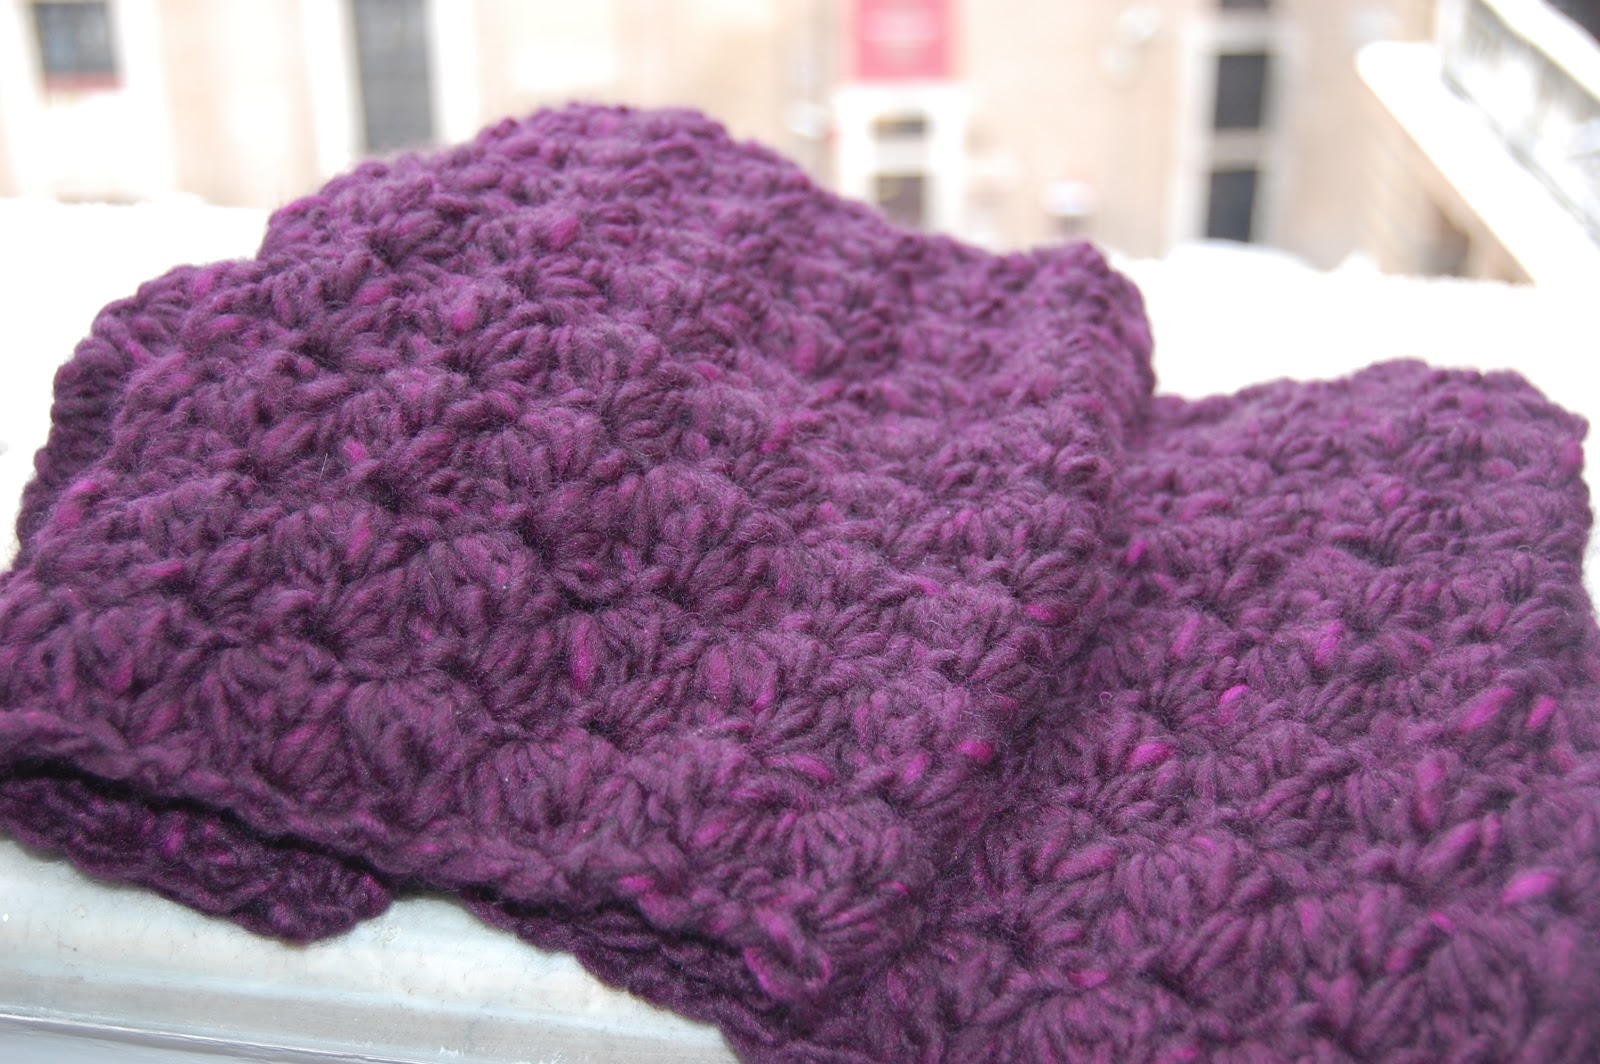 Crochet Shawl Patterns Bulky Yarn : Bulky Purple Crochet Scarf What Do I Do?